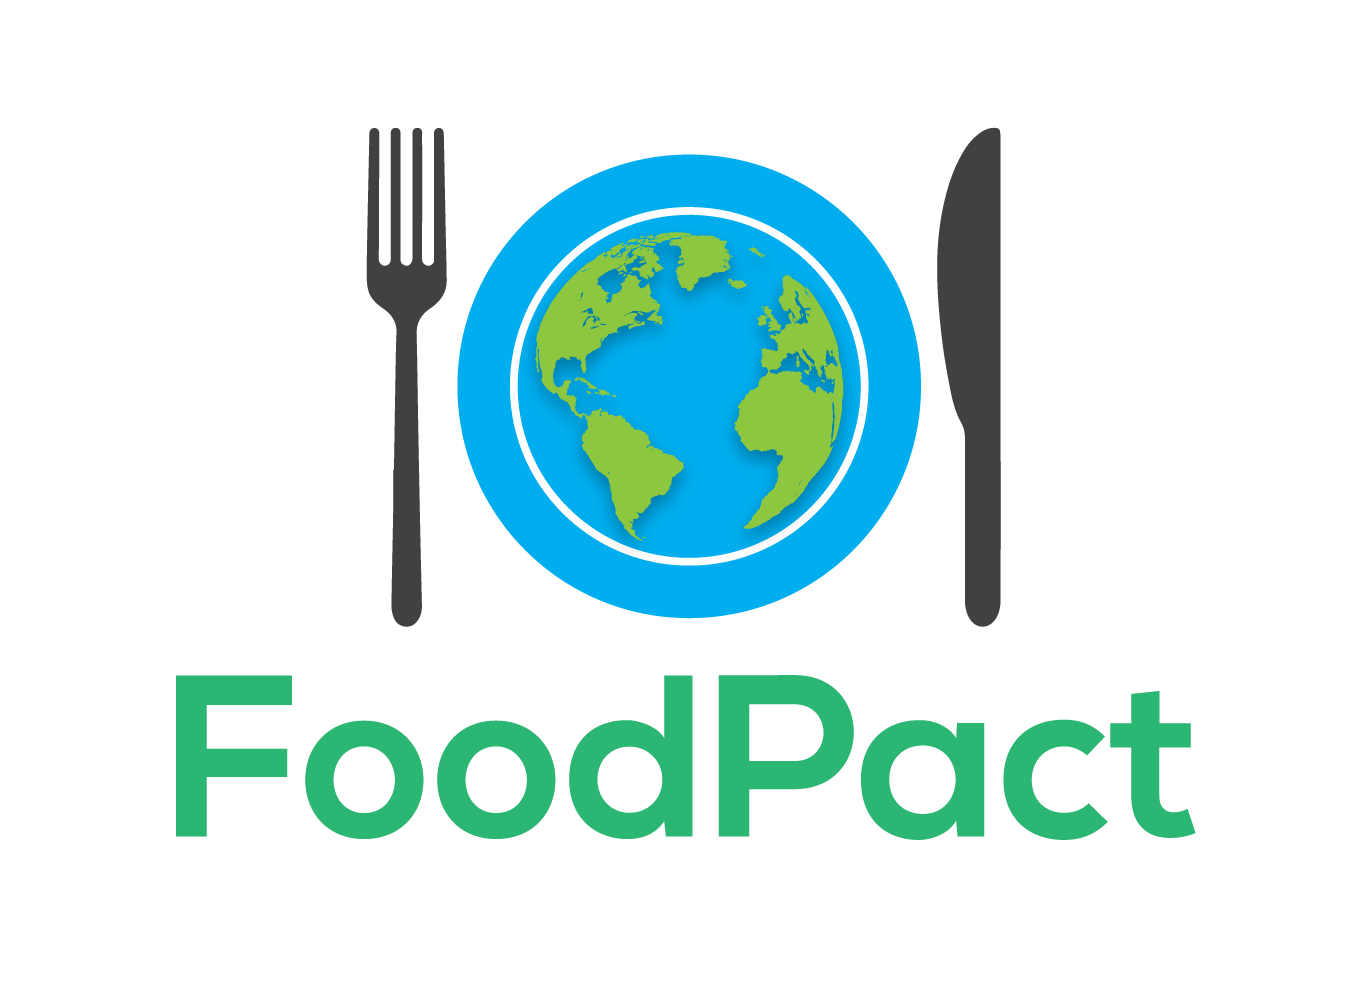 A fork and knife surround a plate that has earth on it and FoodPact is written below.